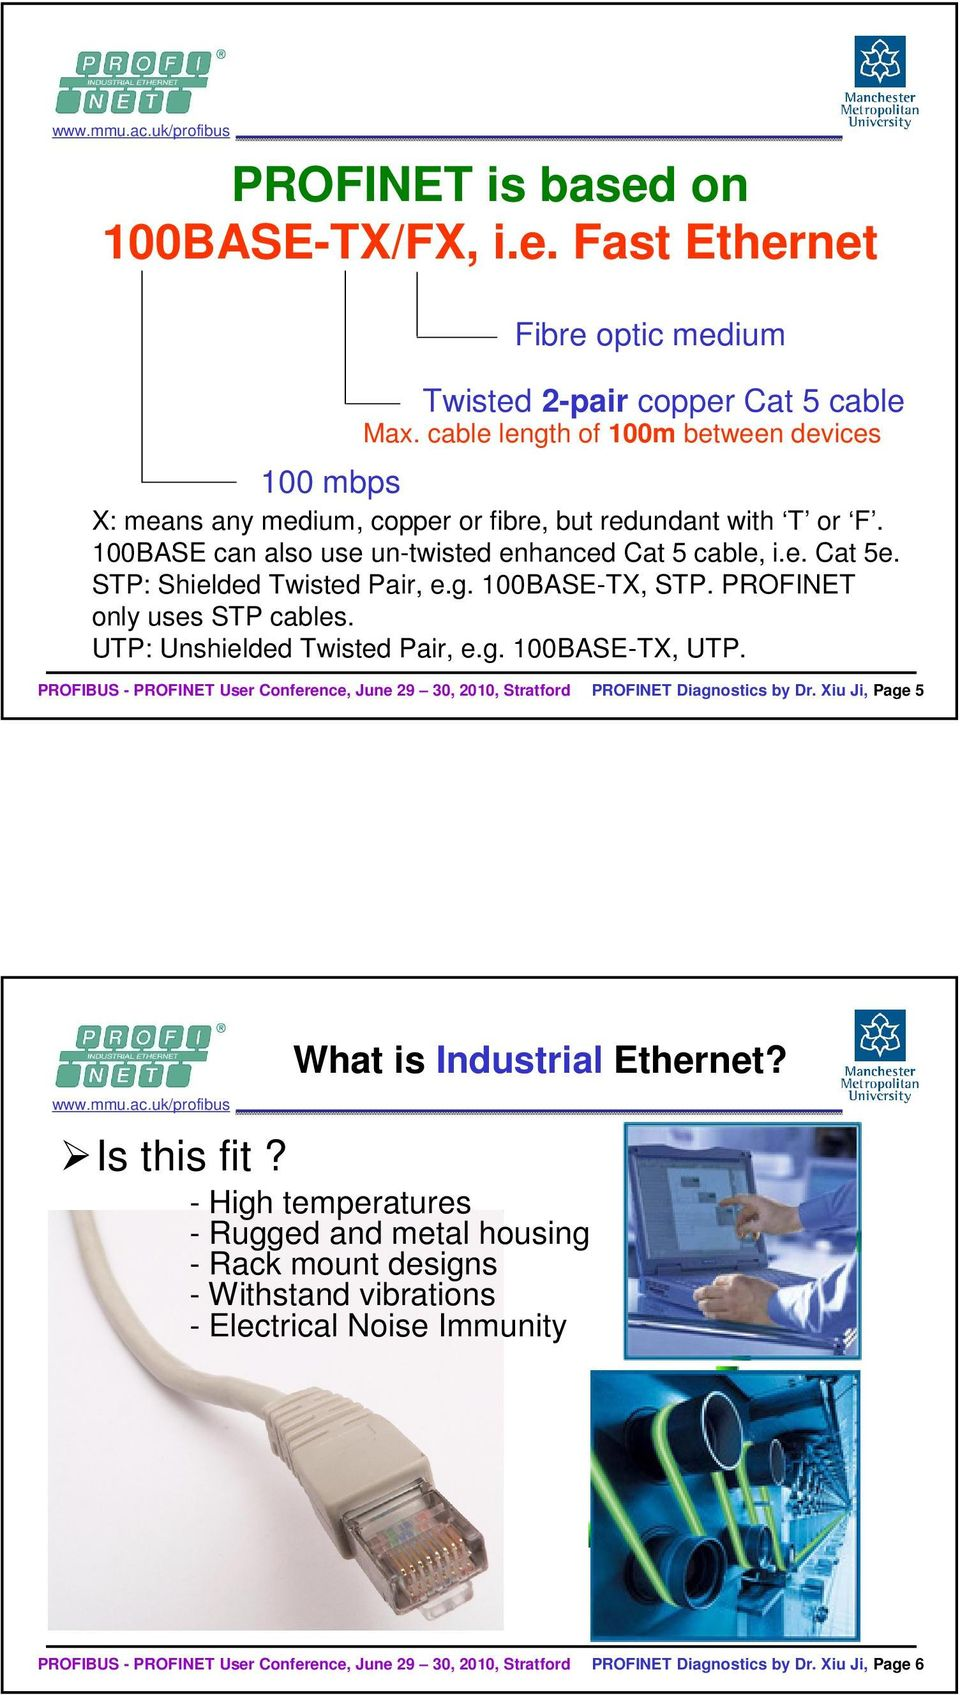 e. Cat 5e. STP: Shielded Twisted Pair, e.g. 100BASE-TX, STP. PROFINET only uses STP cables. UTP: Unshielded Twisted Pair, e.g. 100BASE-TX, UTP.